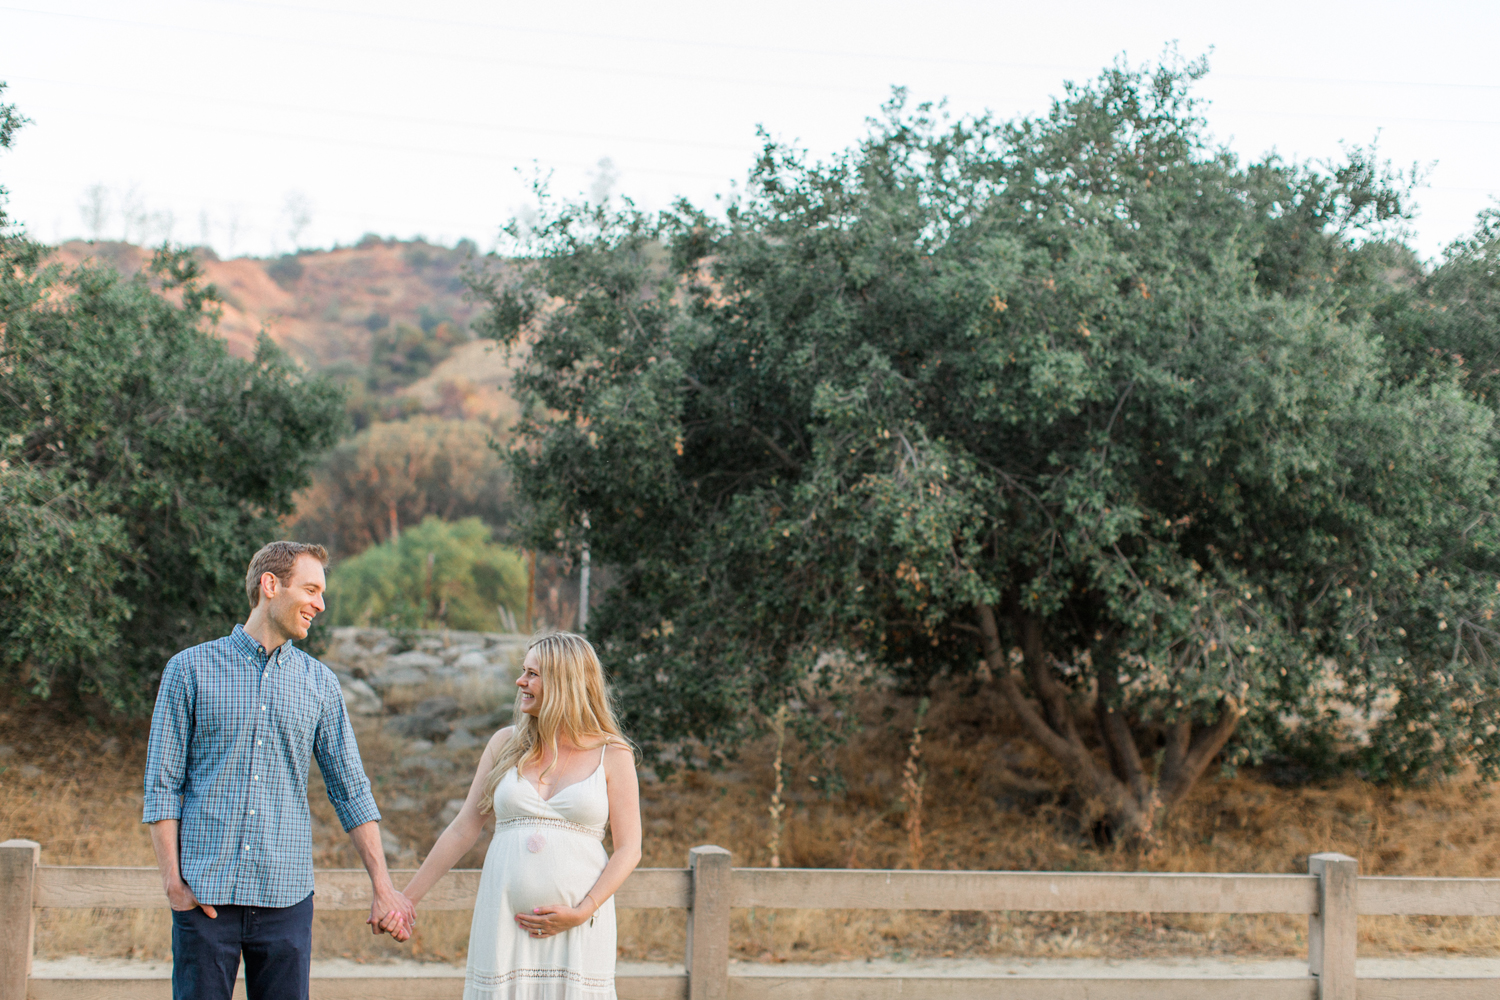 los-angeles-maternity-photographer018